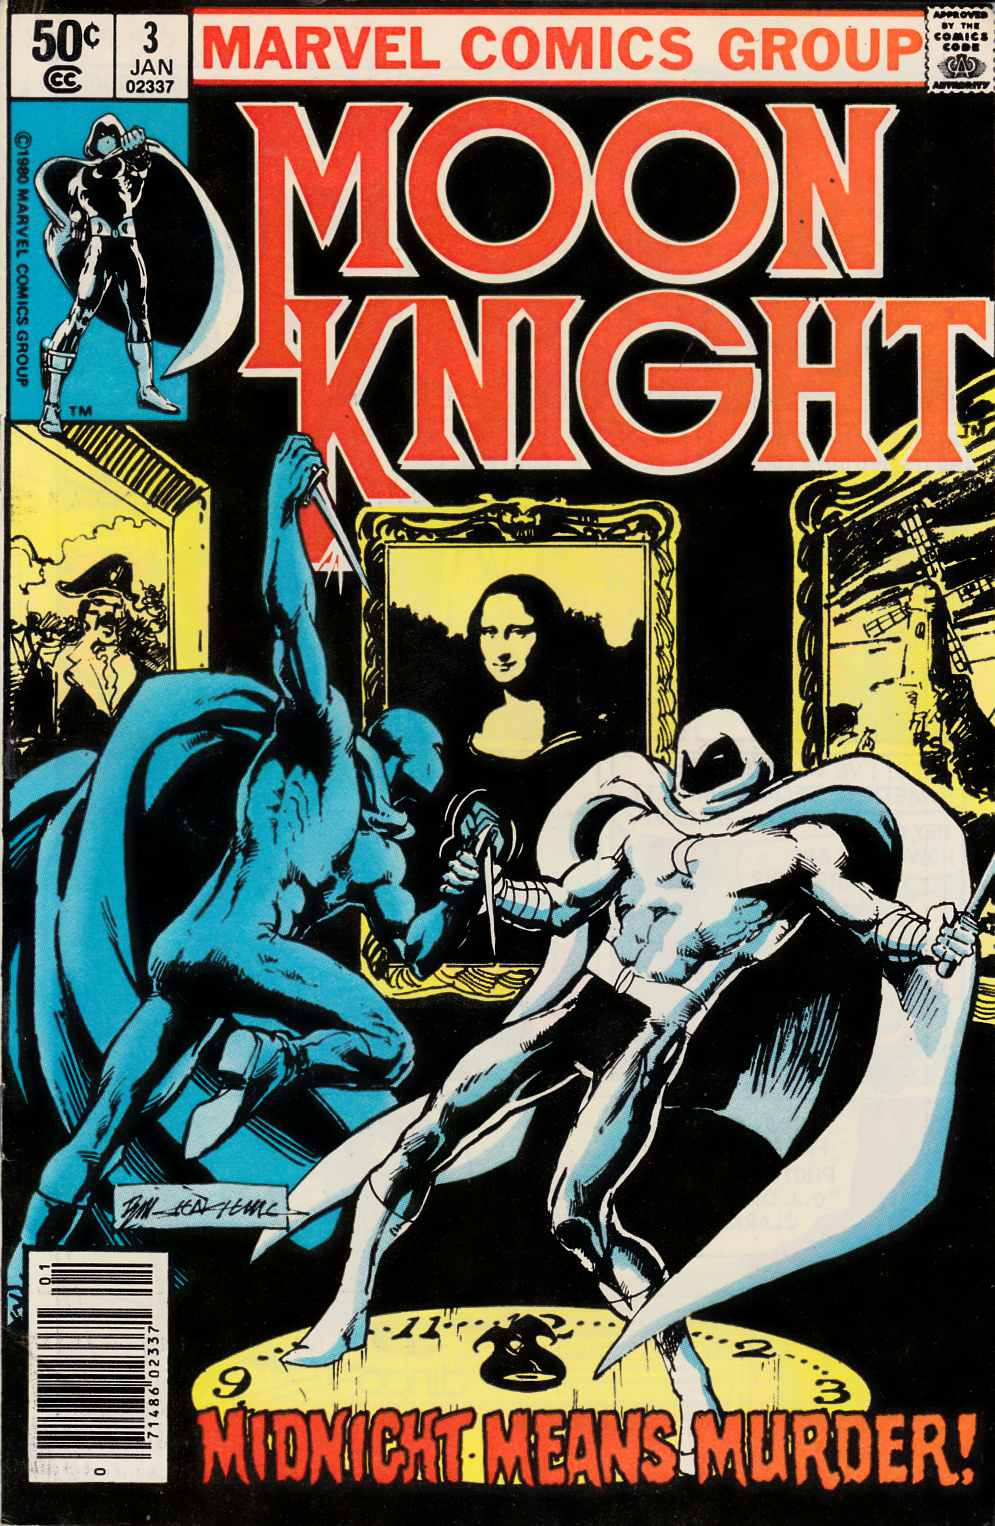 Moon Knight #3 Newsstand Edition Fine Plus (6.5) [Marvel Comic] THUMBNAIL